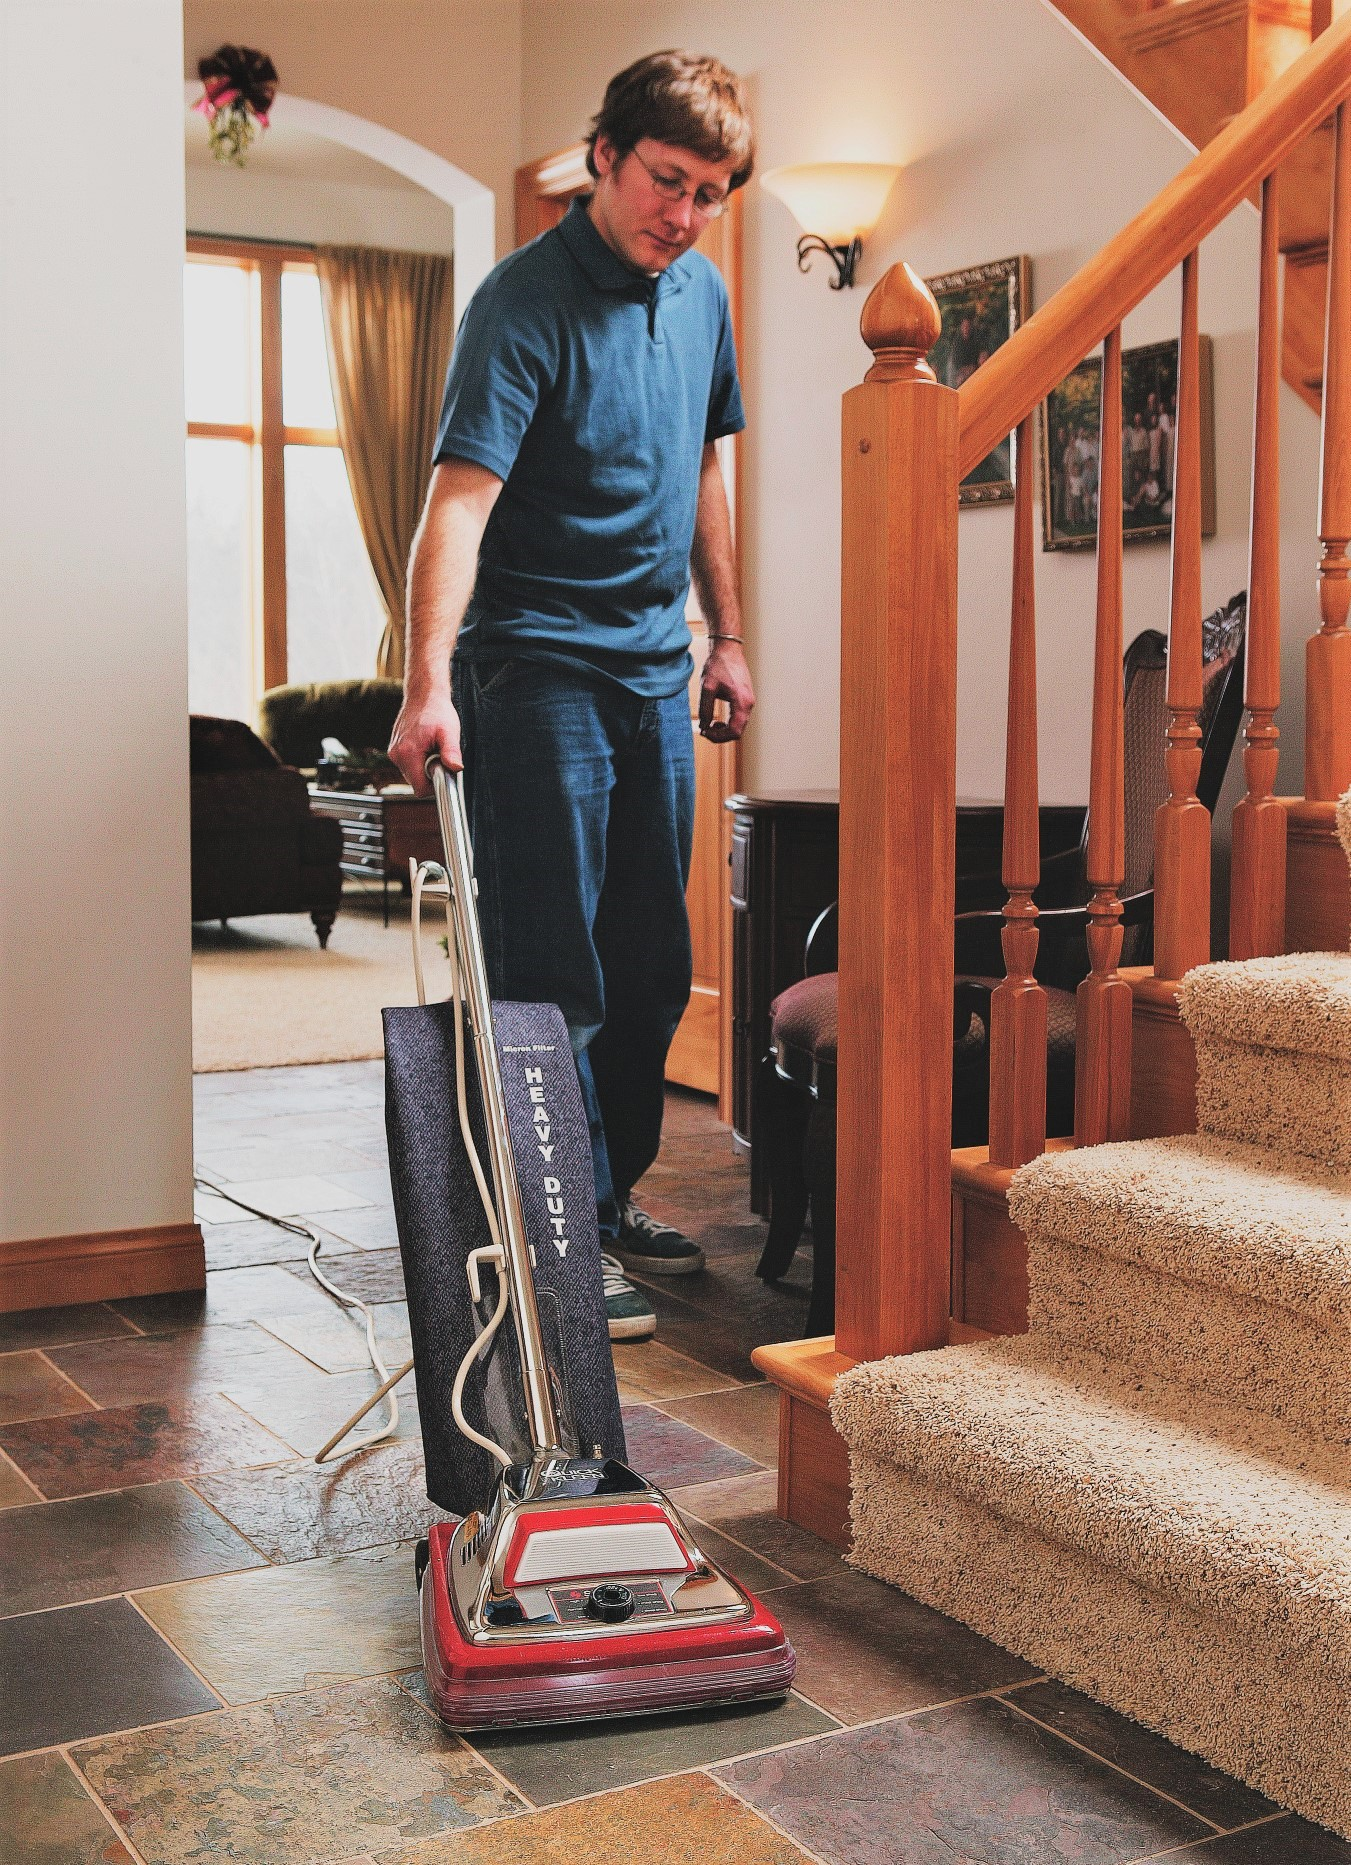 Man Vacuuming Near Staircase